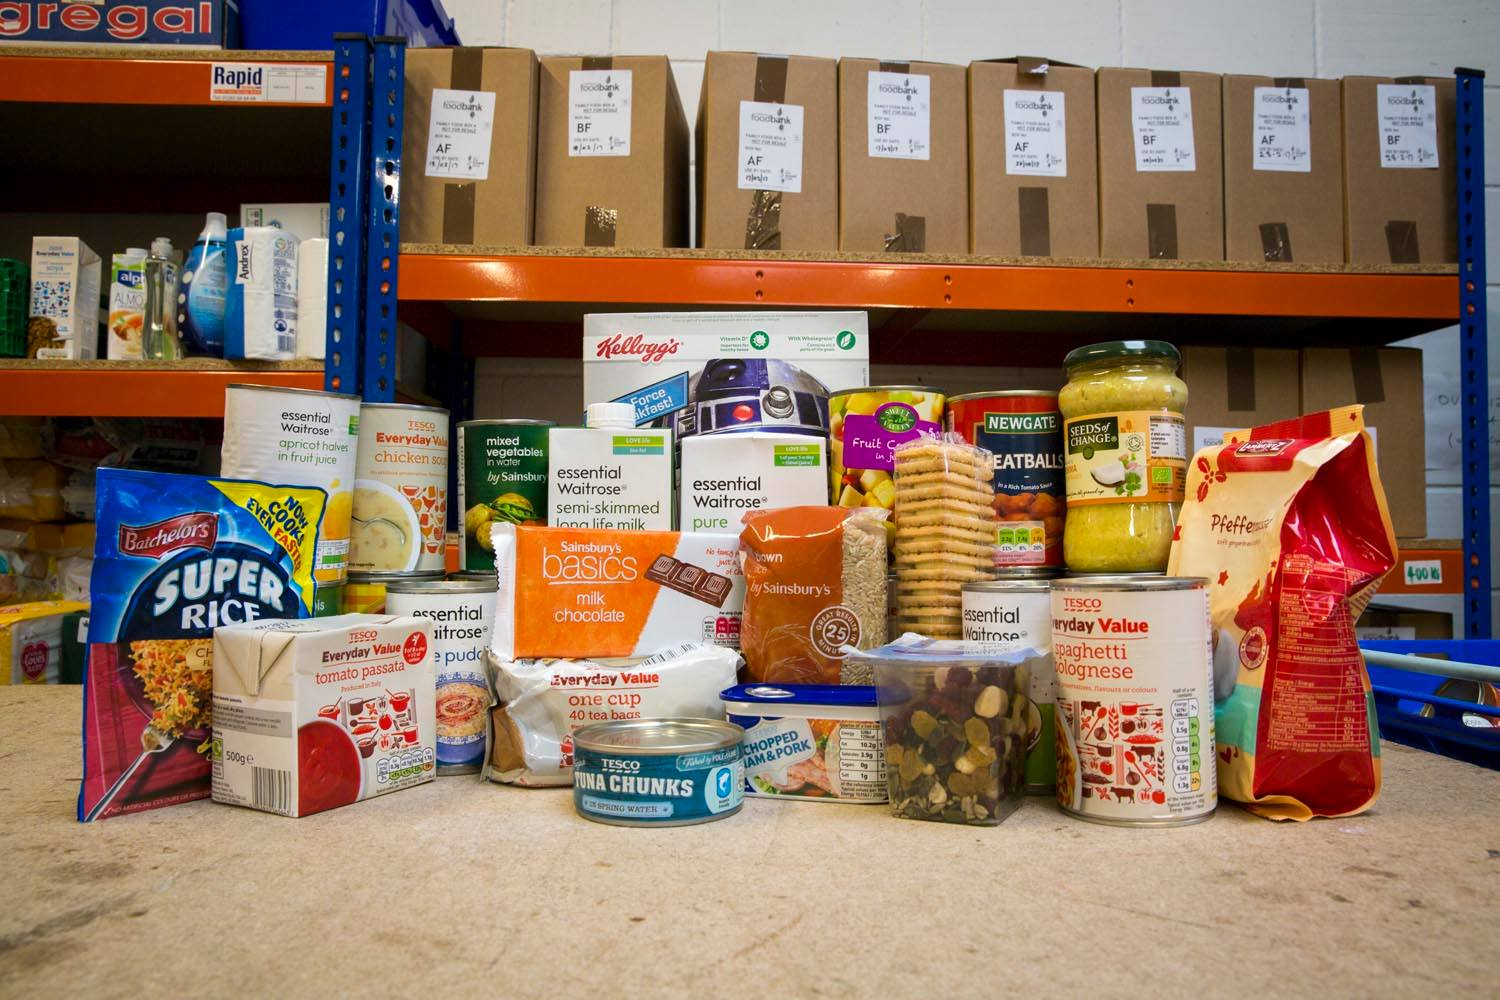 The Right to Food: Addressing Hunger in Modern Britain Head-On